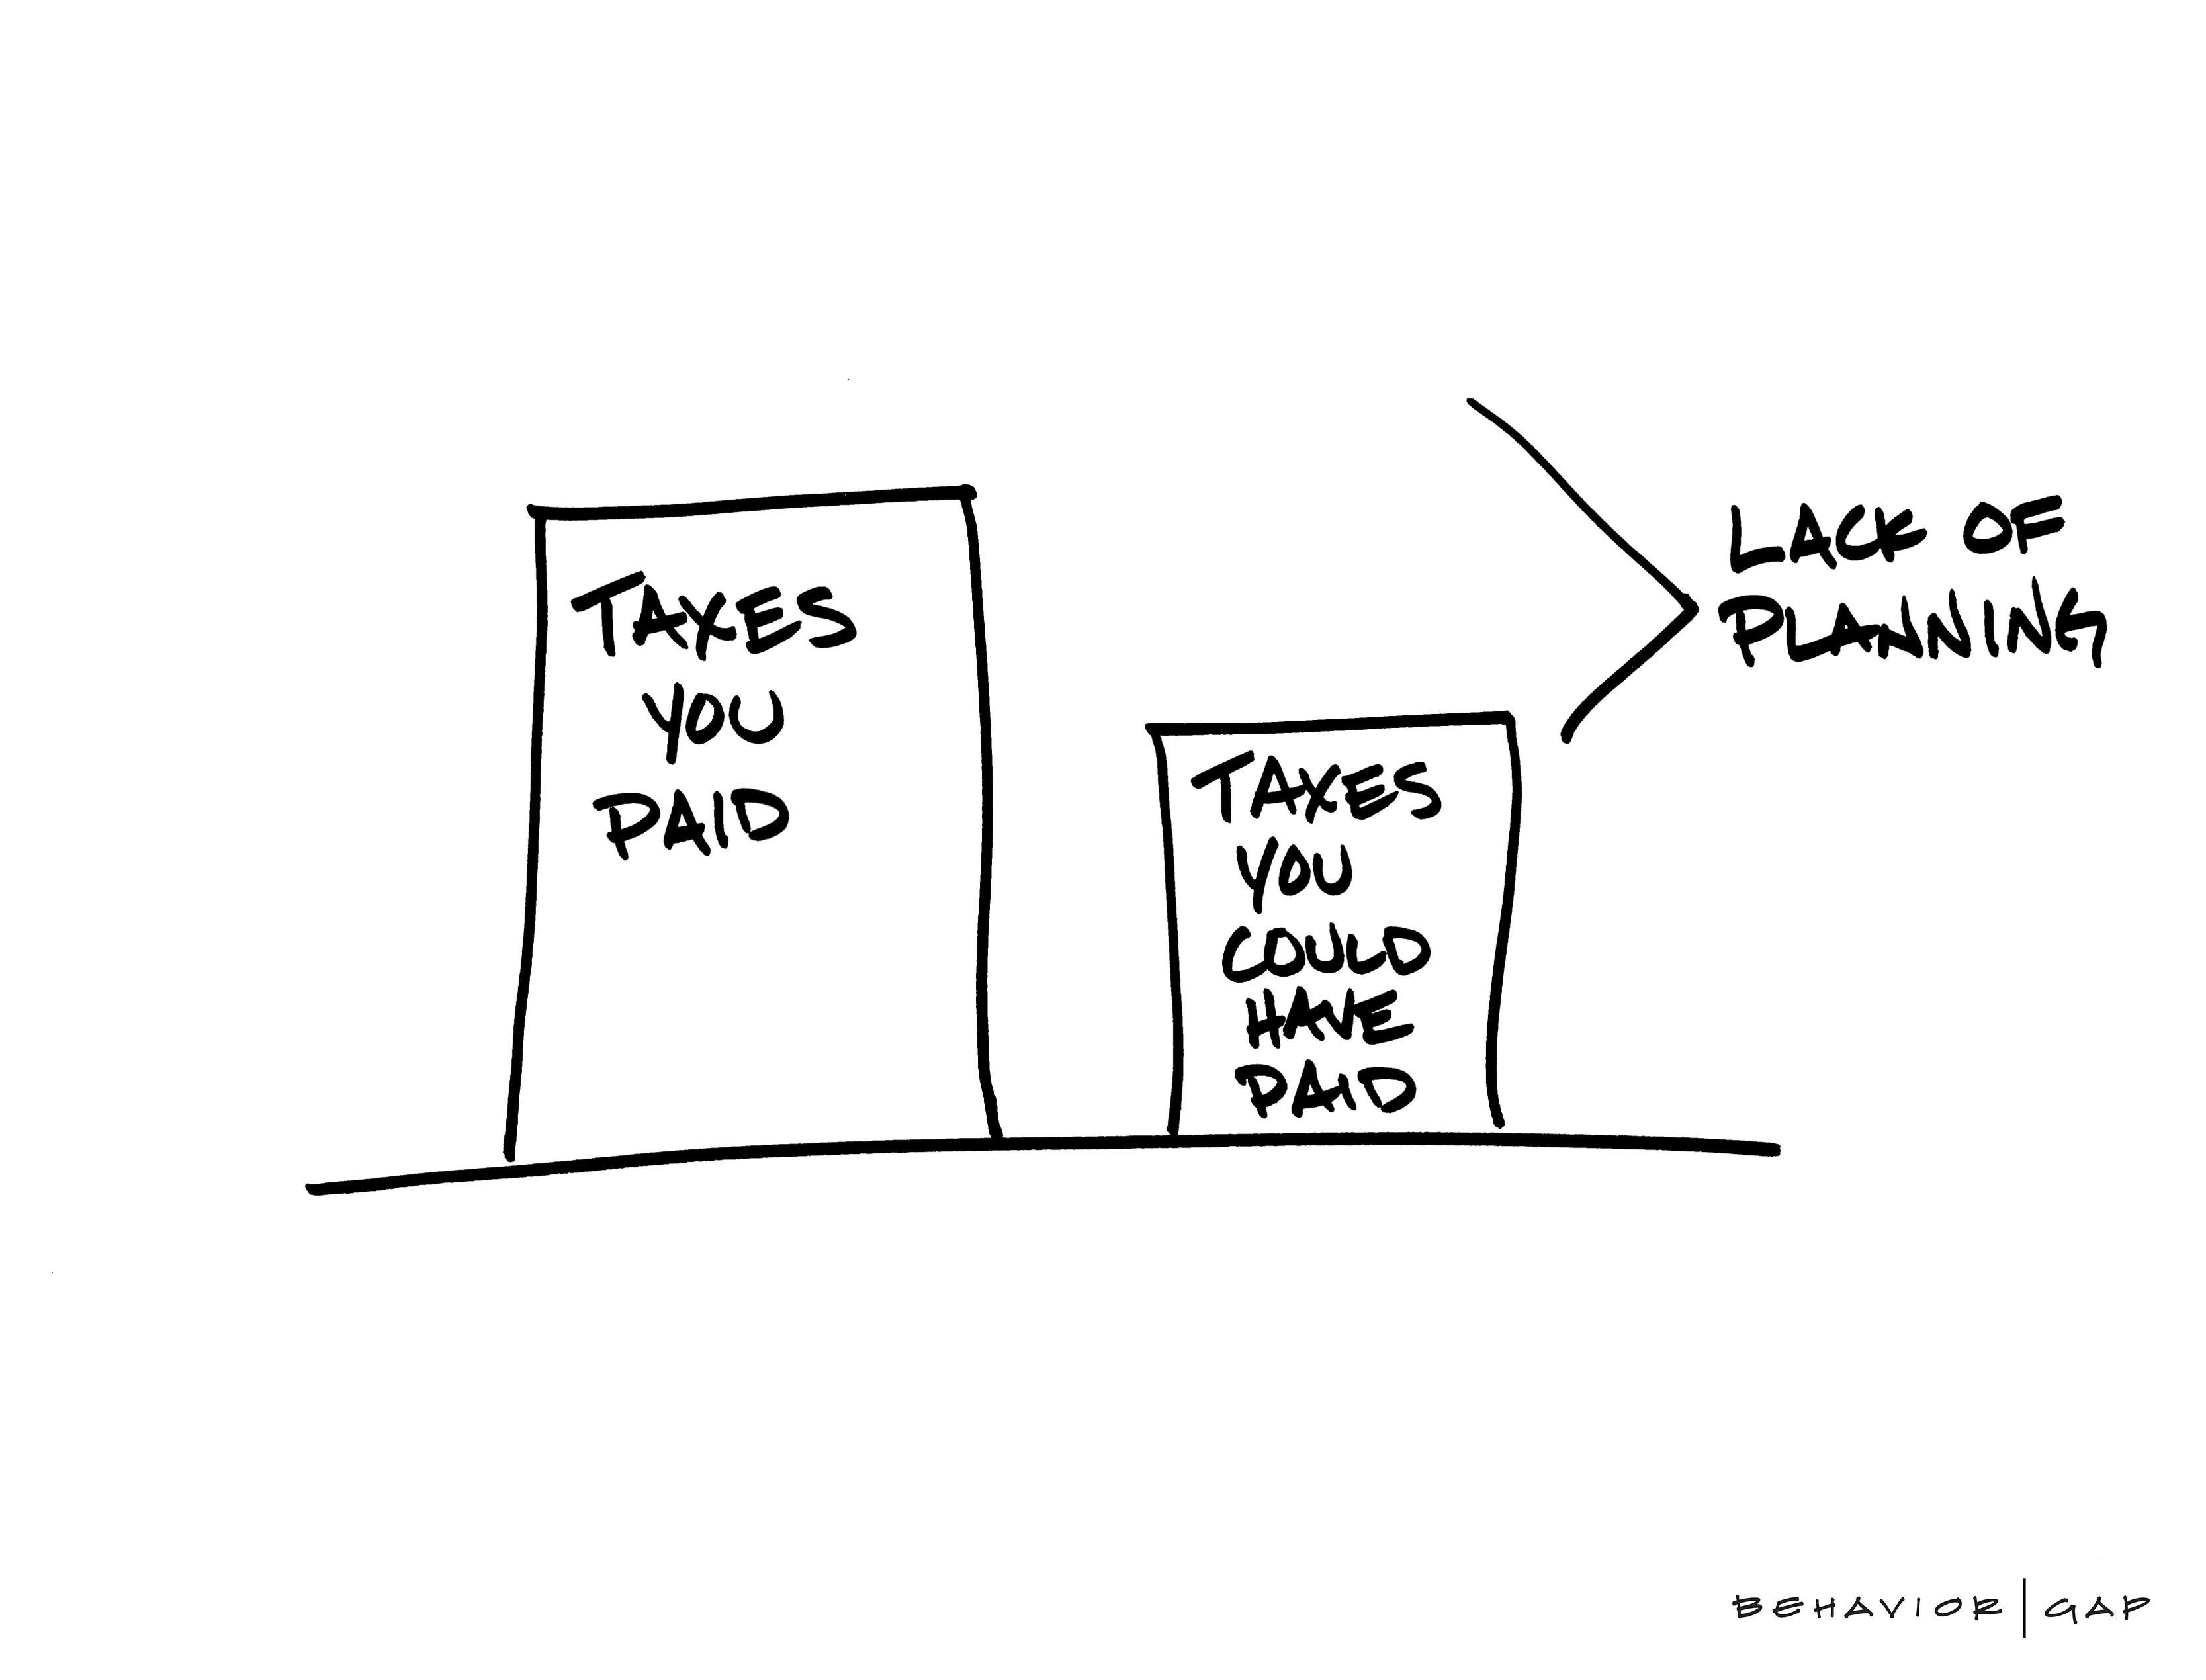 Taxes Lack of Planning